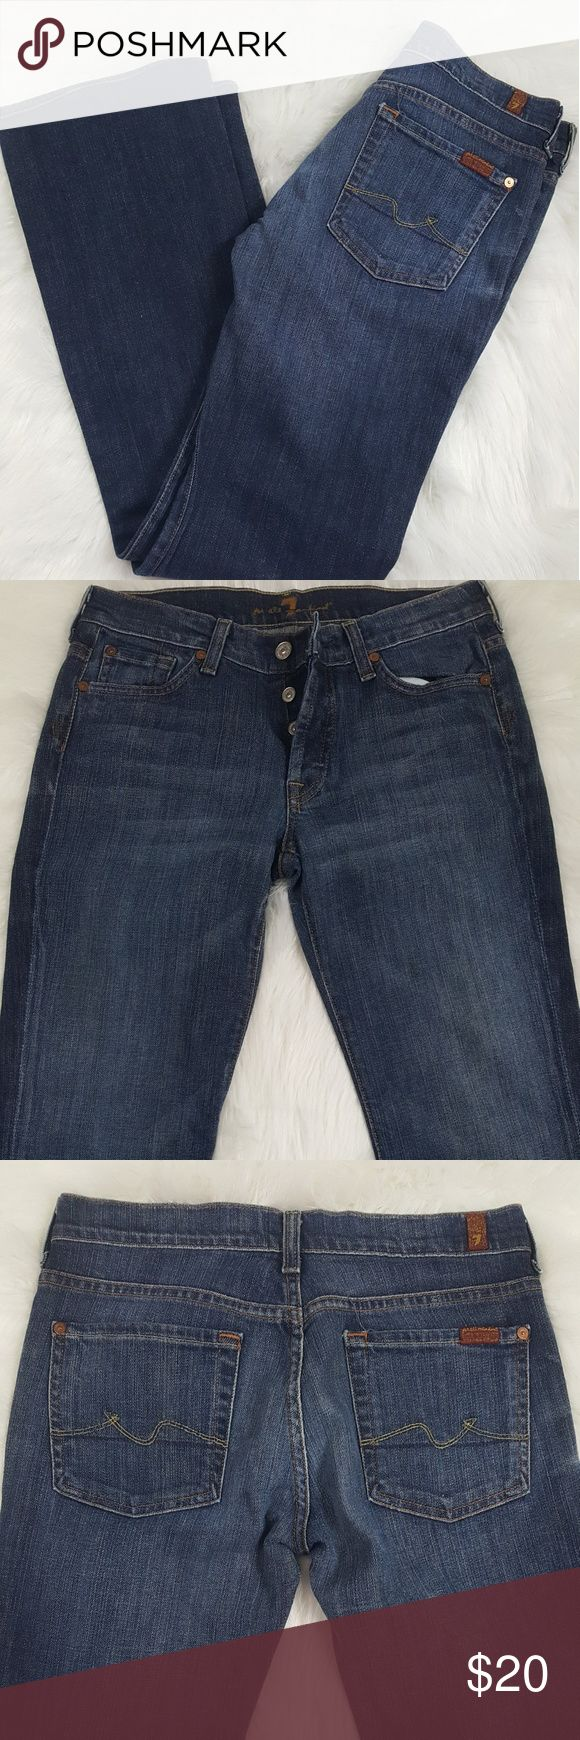 7 For All Mankind Women's Jeans Boy Cut Style 7 For All Mankind Jeans Boy Cut style with button up instead of zippers. Small stain on left knee. Not that visible. Otherwise great condition.  Measurements: Waist: 28 inches Inseam: 33 1/2 Hips: 19 inches Rise: 9 inches Cuffs: 9 inches 7 For All Mankind Jeans Boot Cut